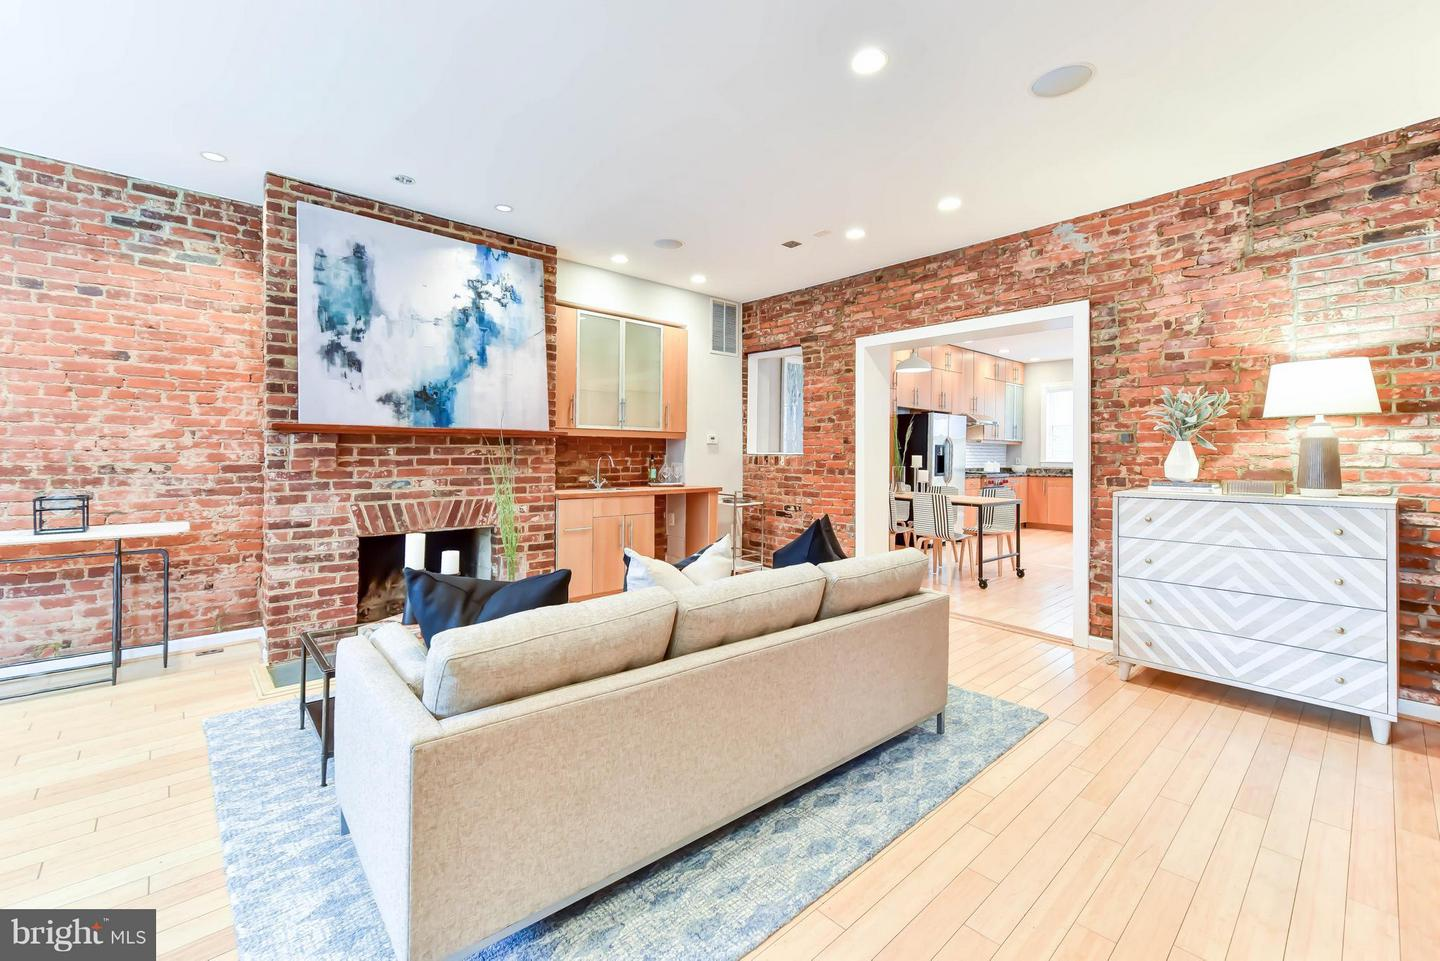 Single Family for Sale at 82 P St NW Washington, District Of Columbia 20001 United States